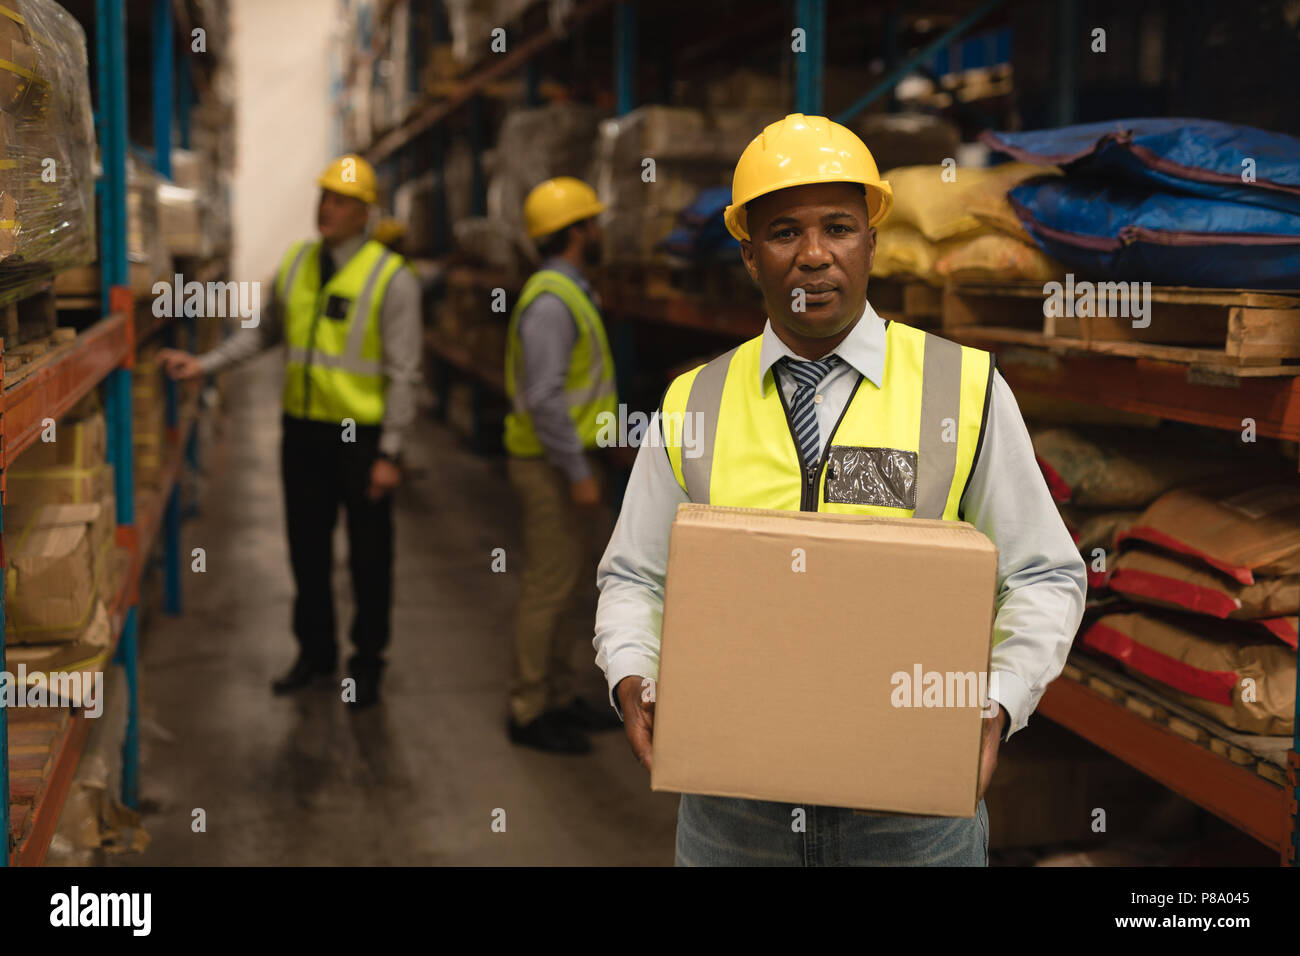 Male Staff holding cardboard box in warehouse - Stock Image